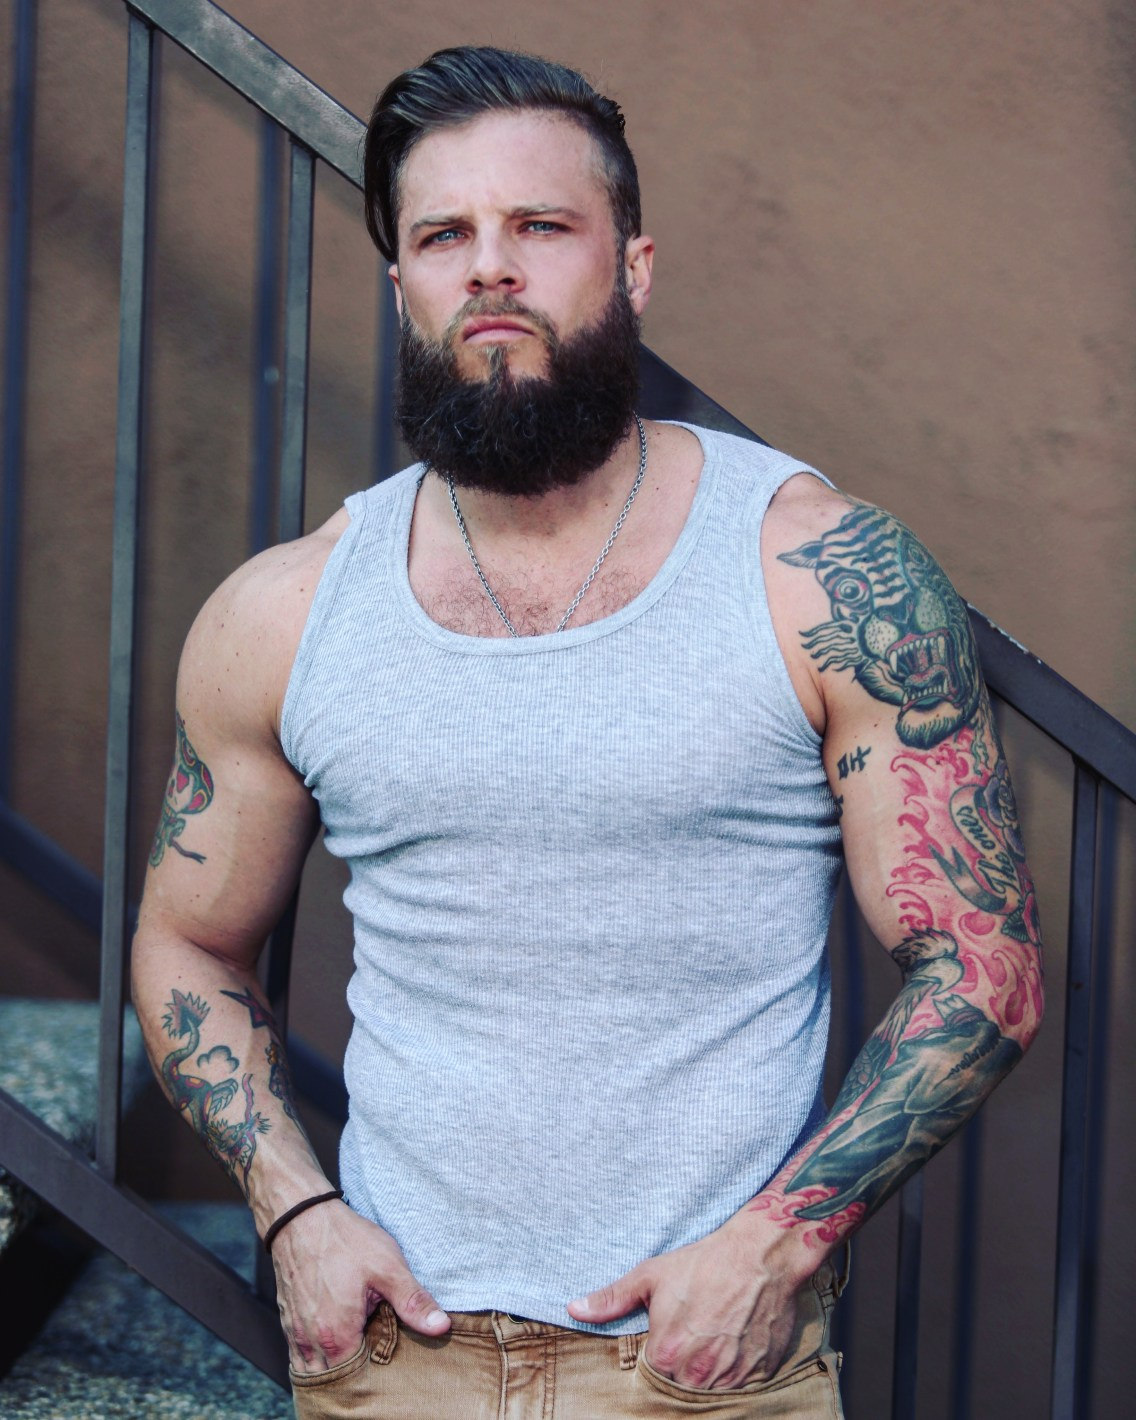 Matt Farnsworth